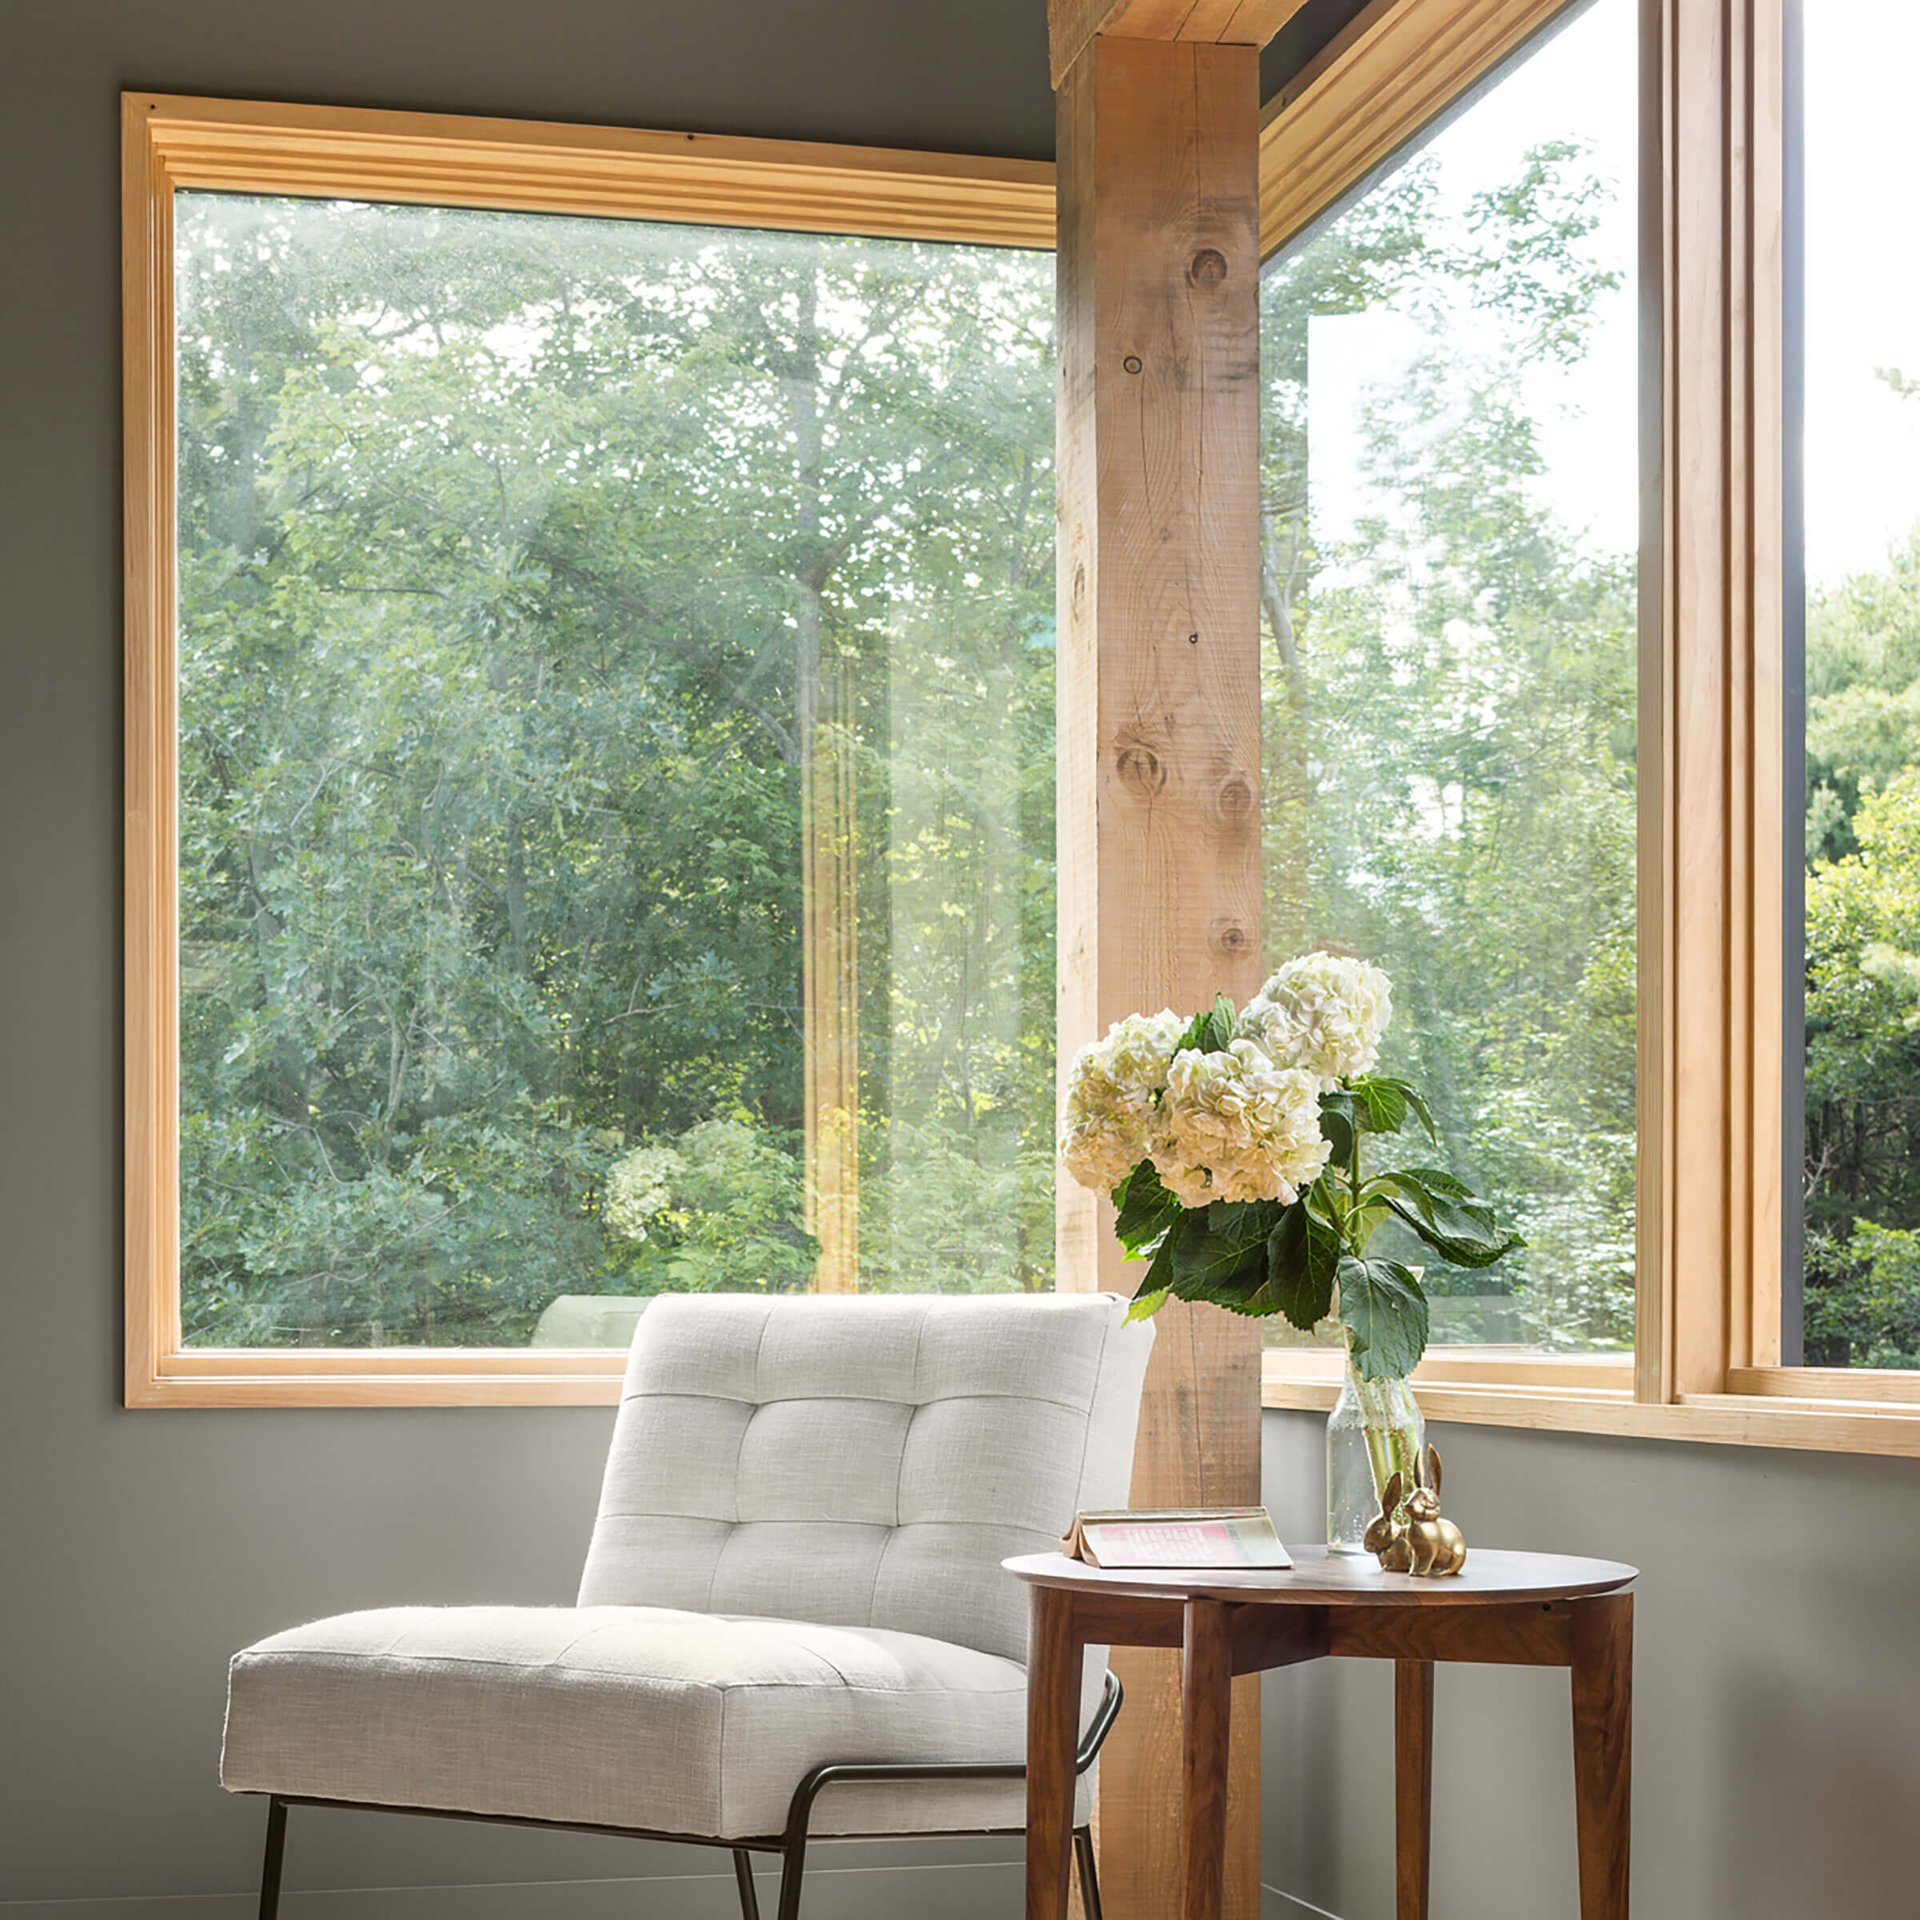 Cozy Sitting Area In Front Of Essential Casement Window